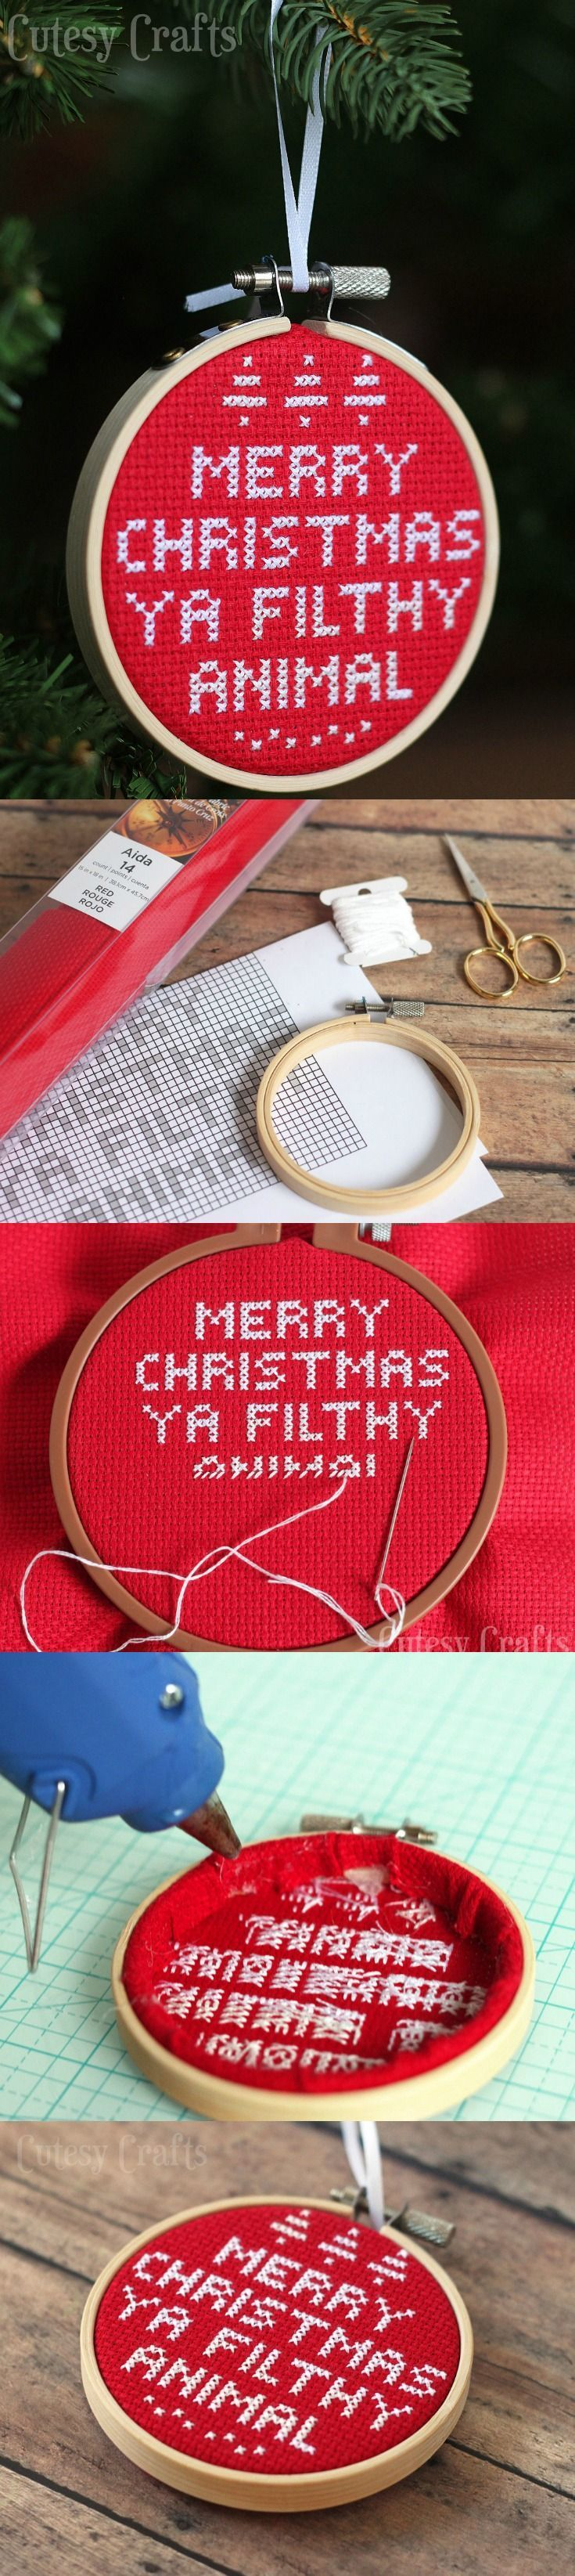 Cross Stitch Diy Christmas Ornament Christmas Vacationchristmas